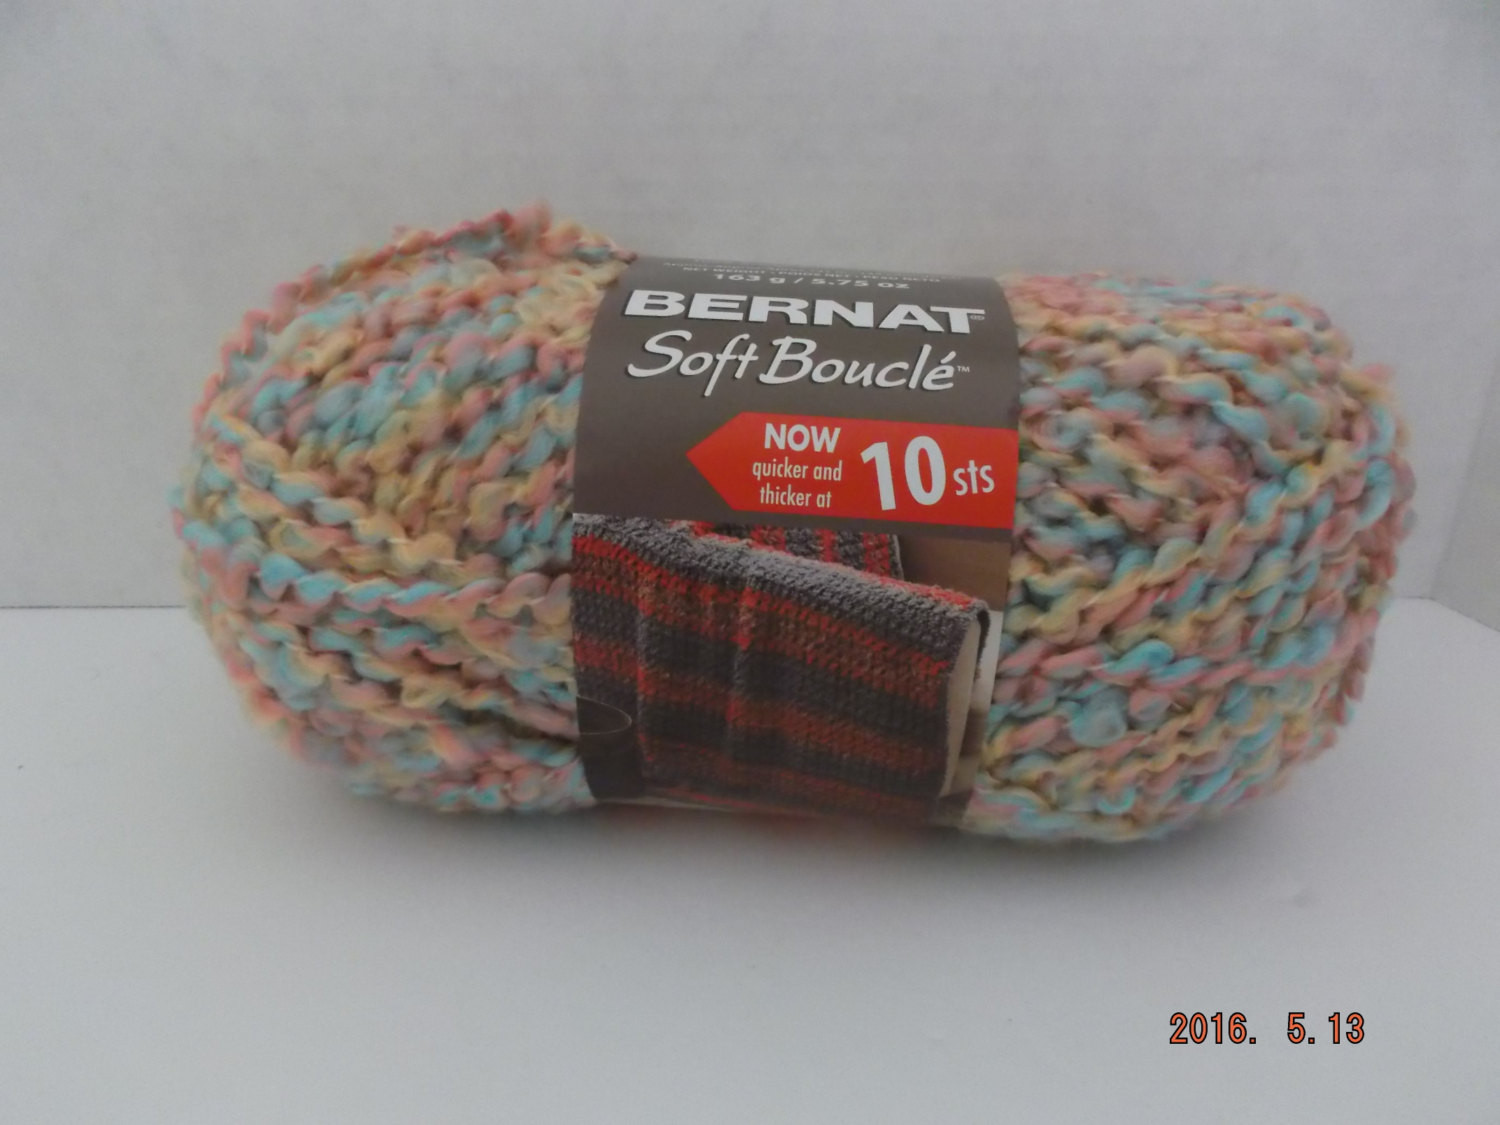 Bernat Super Bulky Yarn New Bernat soft Boucle Yarn Colour Pastel Palette 163 Of Luxury 41 Ideas Bernat Super Bulky Yarn